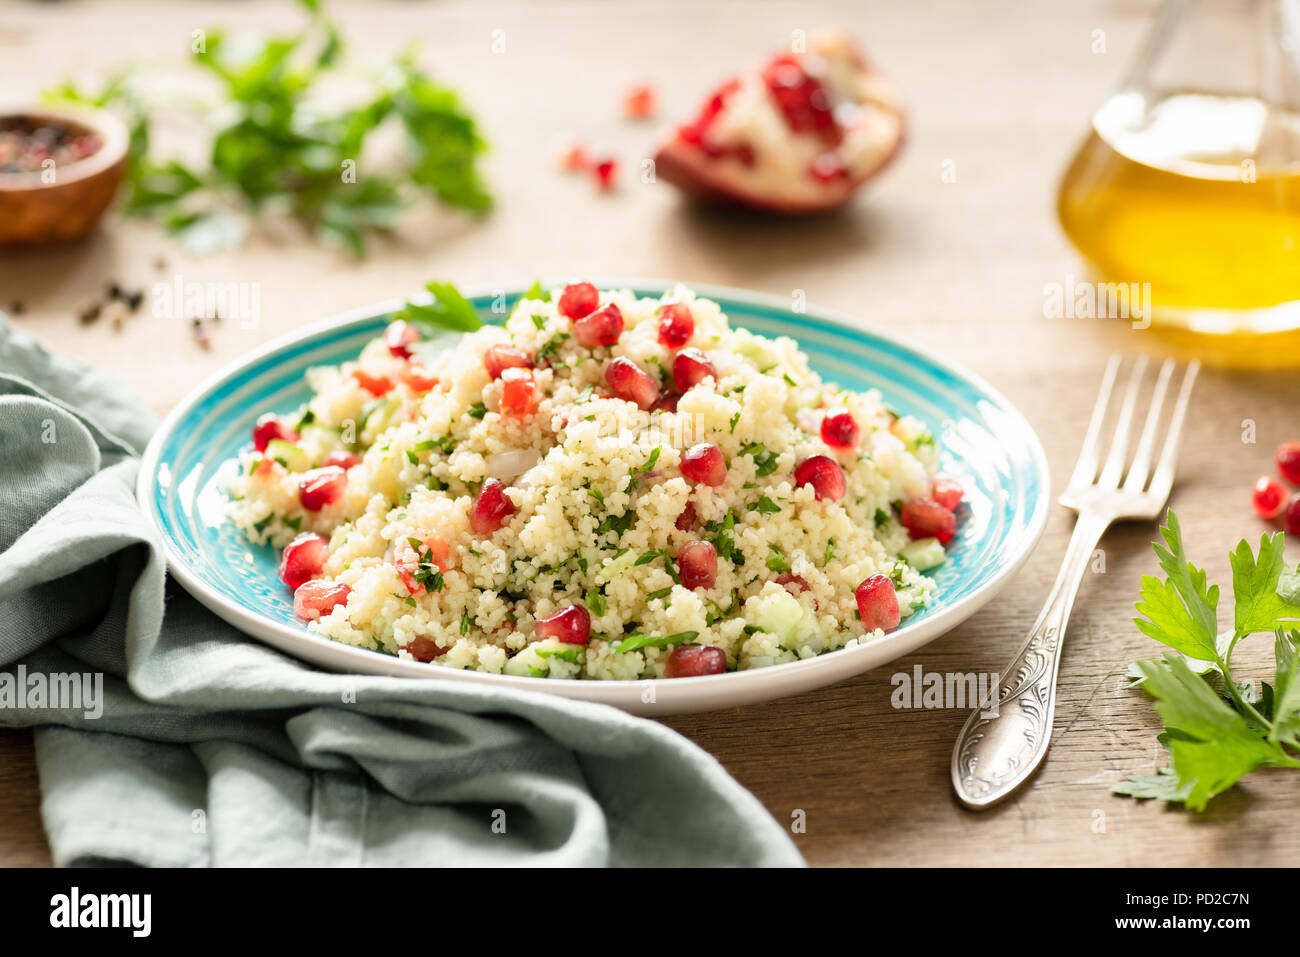 Tabbouleh, Middle Eastern couscous salad with pomegranate, parsley, cucumber on authentic turquoise plate. Vegetarian meal - Stock Image